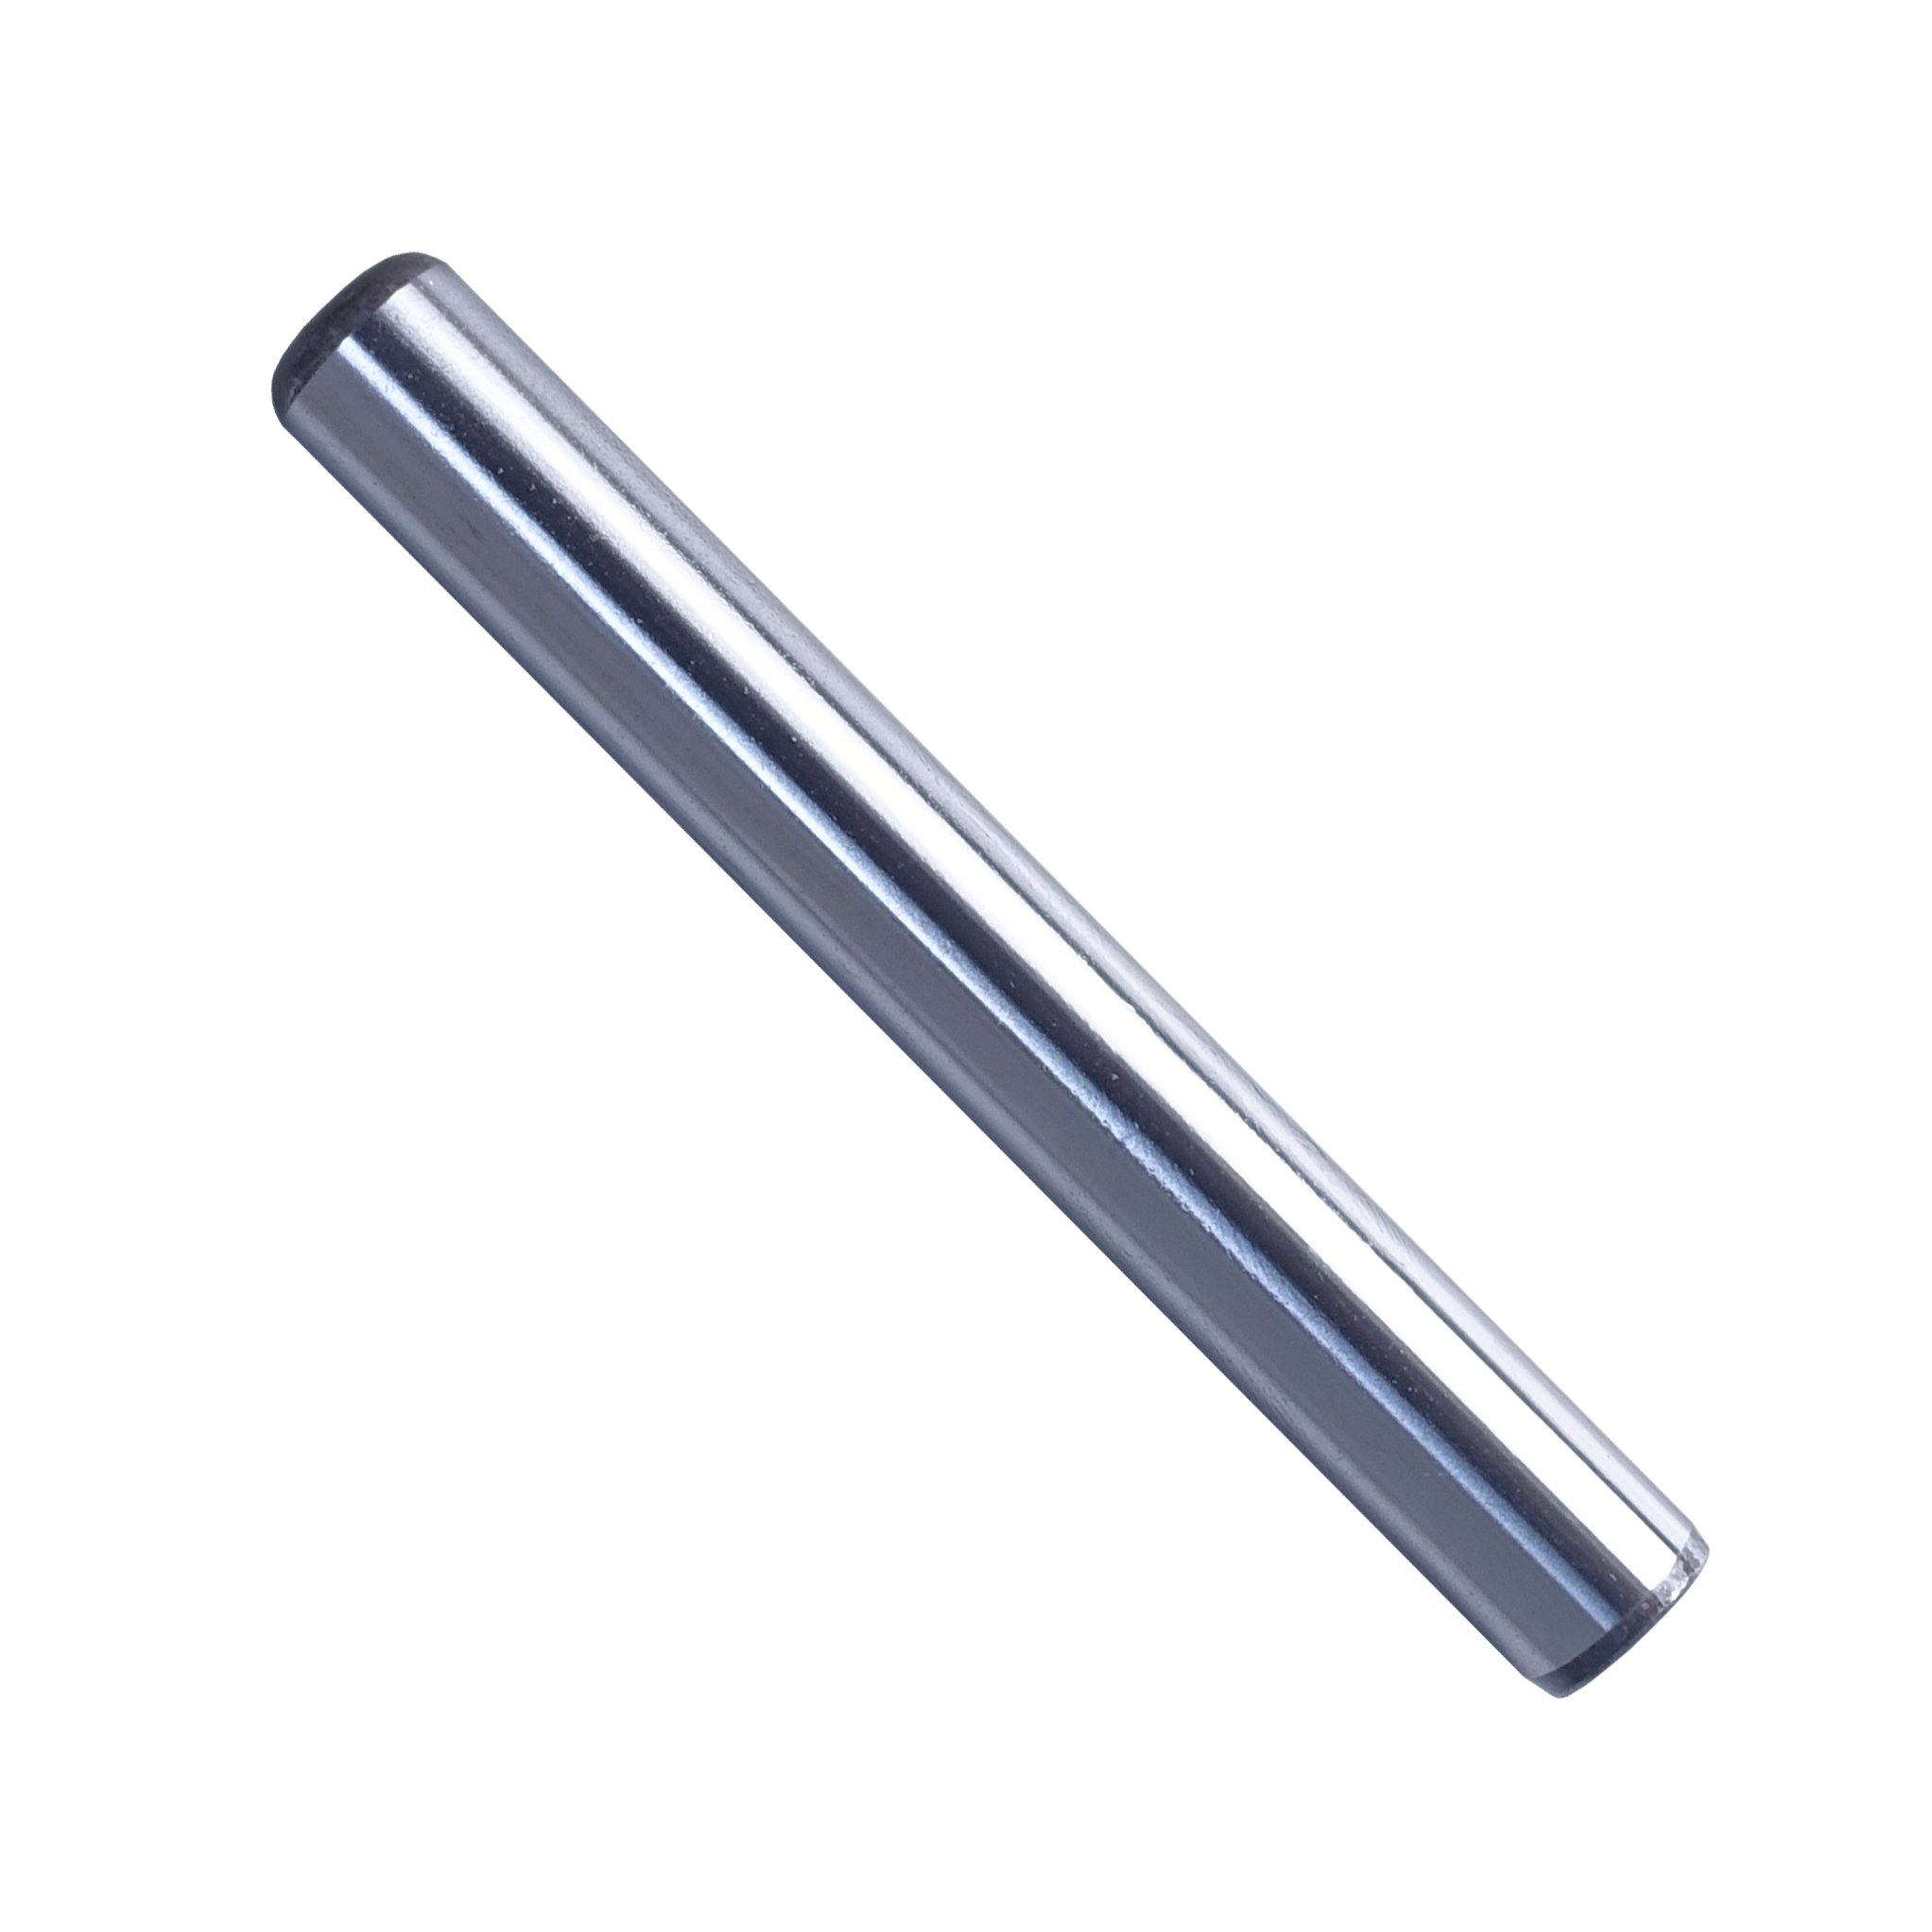 3/8 x 4'' Dowel Pins, Alloy Steel, Pack of 4